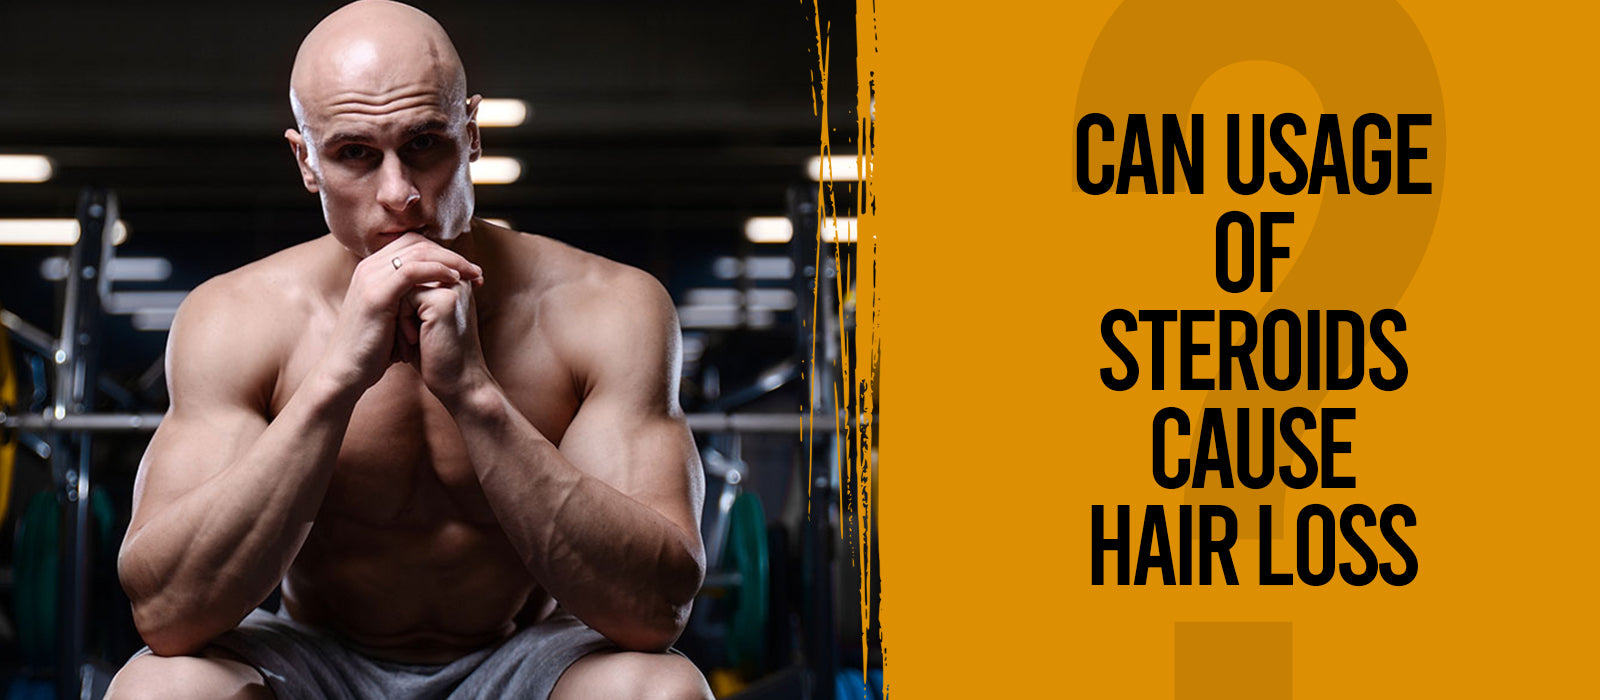 Can Usage Of Steroids Cause Hair Loss